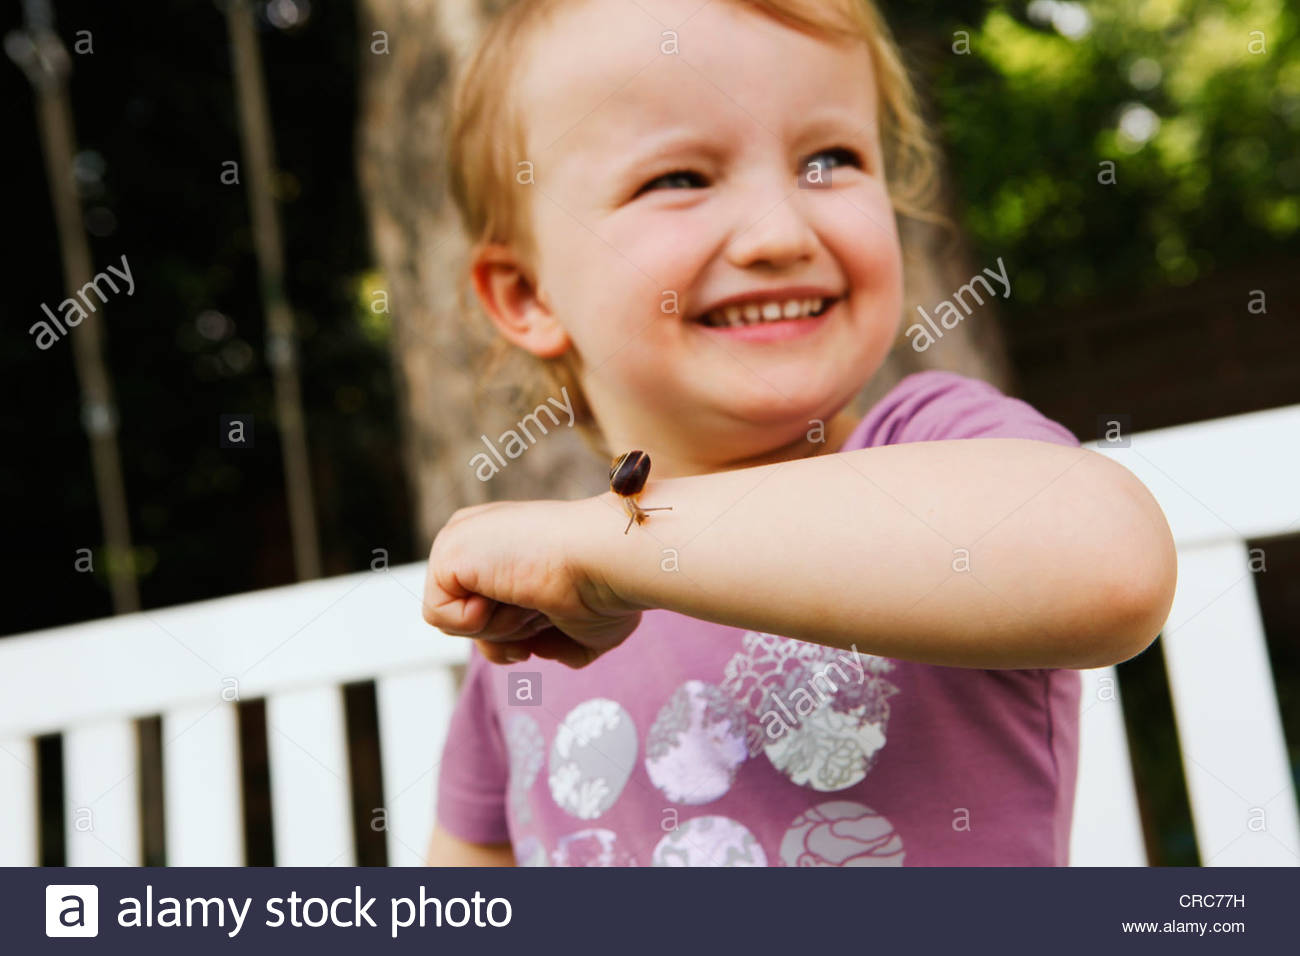 Girl holding snail on arm - Stock Image